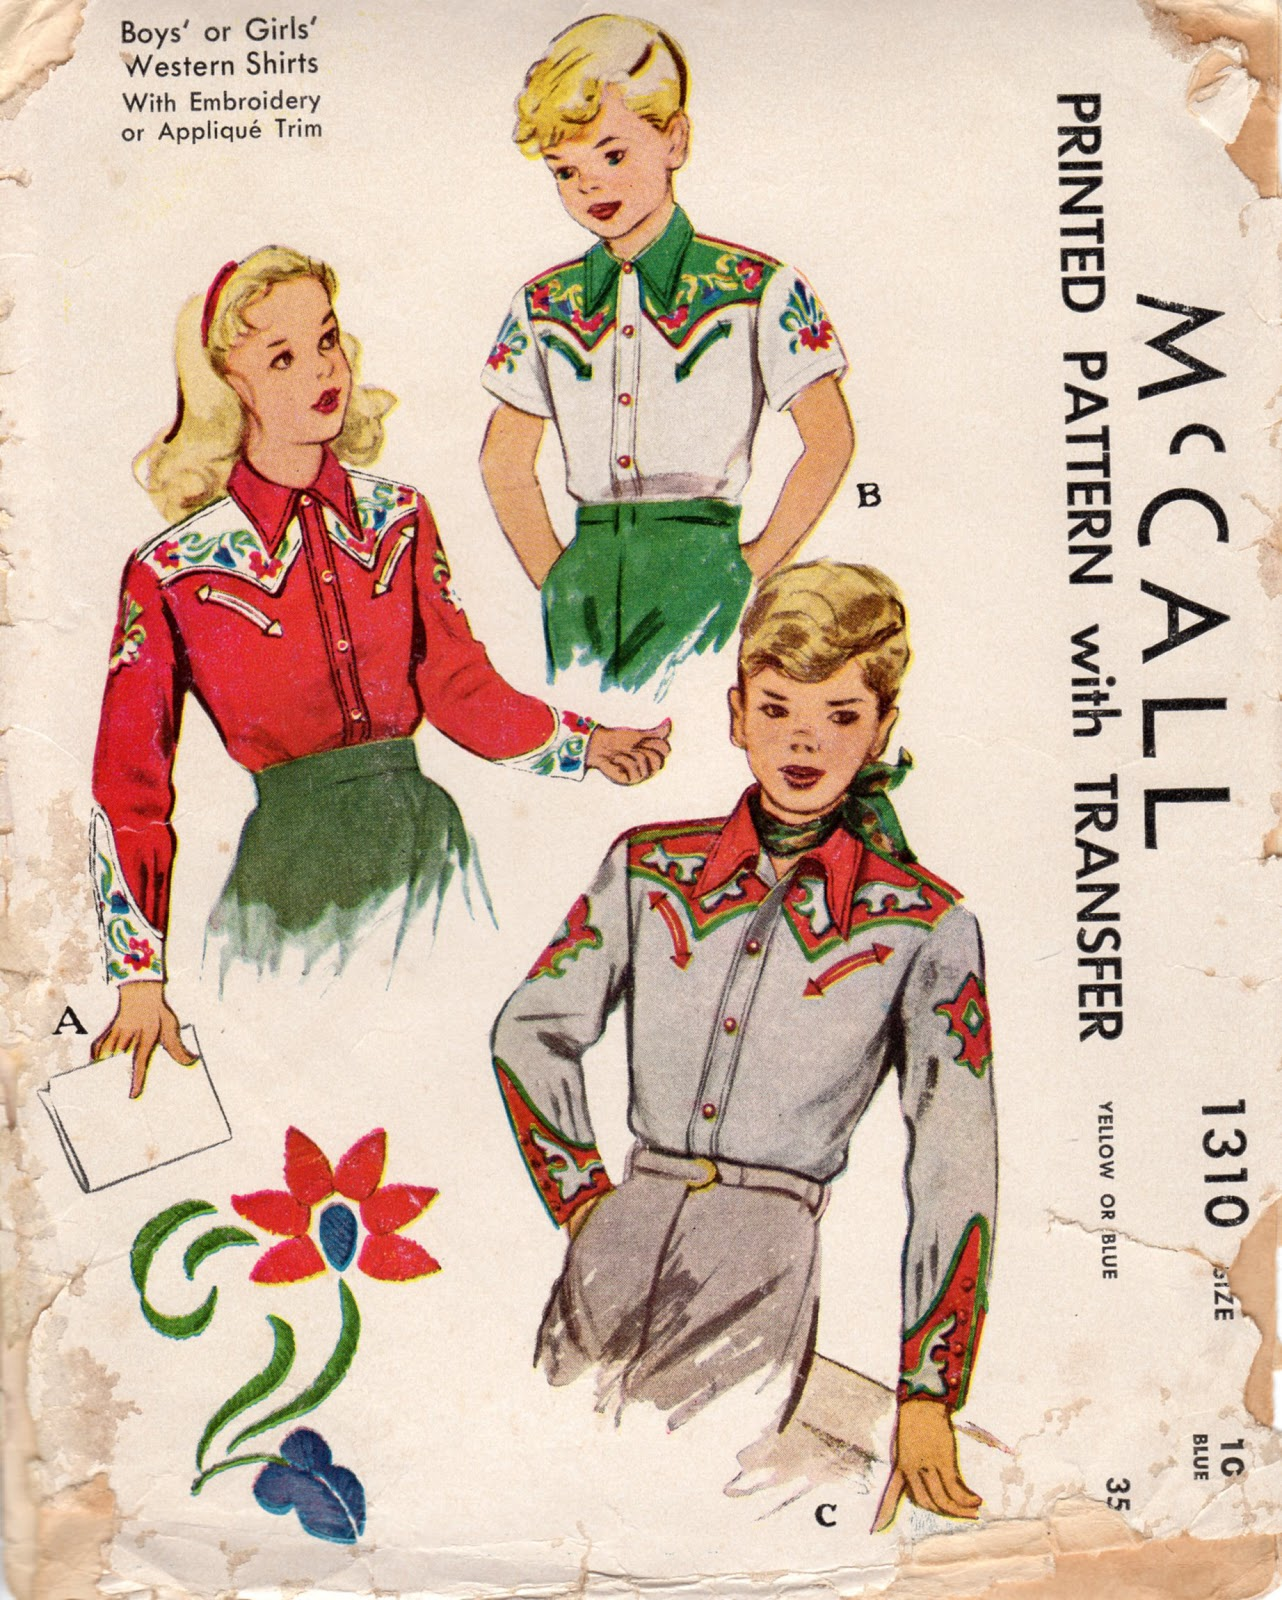 Unsung sewing patterns mccall 1310 boys or girls western shirts mccall 1310 boys or girls western shirts jeuxipadfo Images